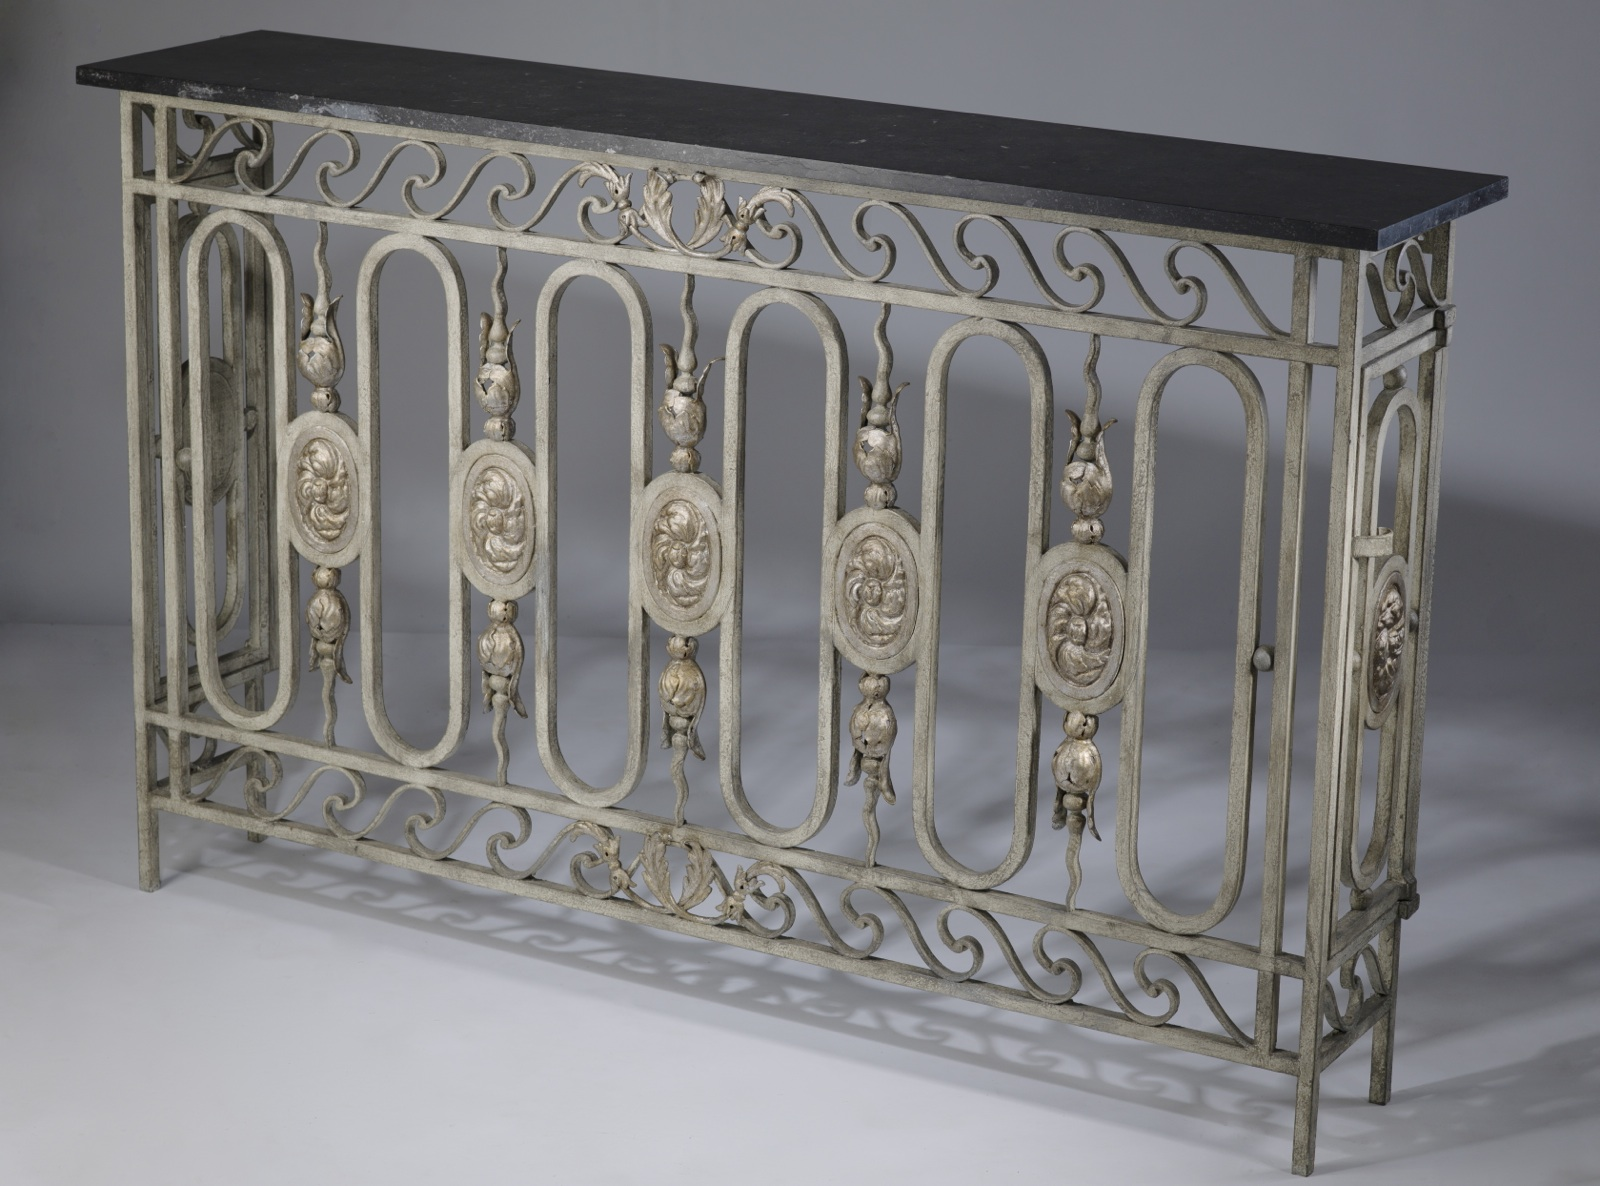 Antique wrought iron table - Antique Wrought Iron French Balcony In Warm Grey Gold Paint Finish With Dark Marble Top